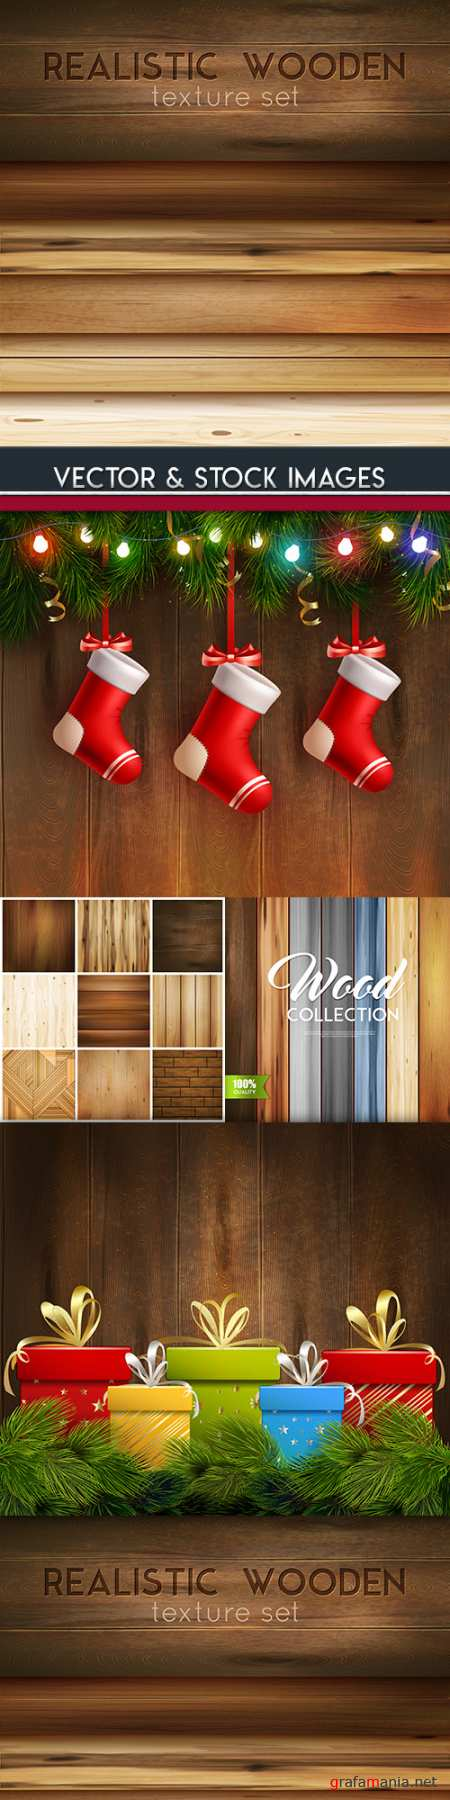 Wooden decorative texture and New Year elements